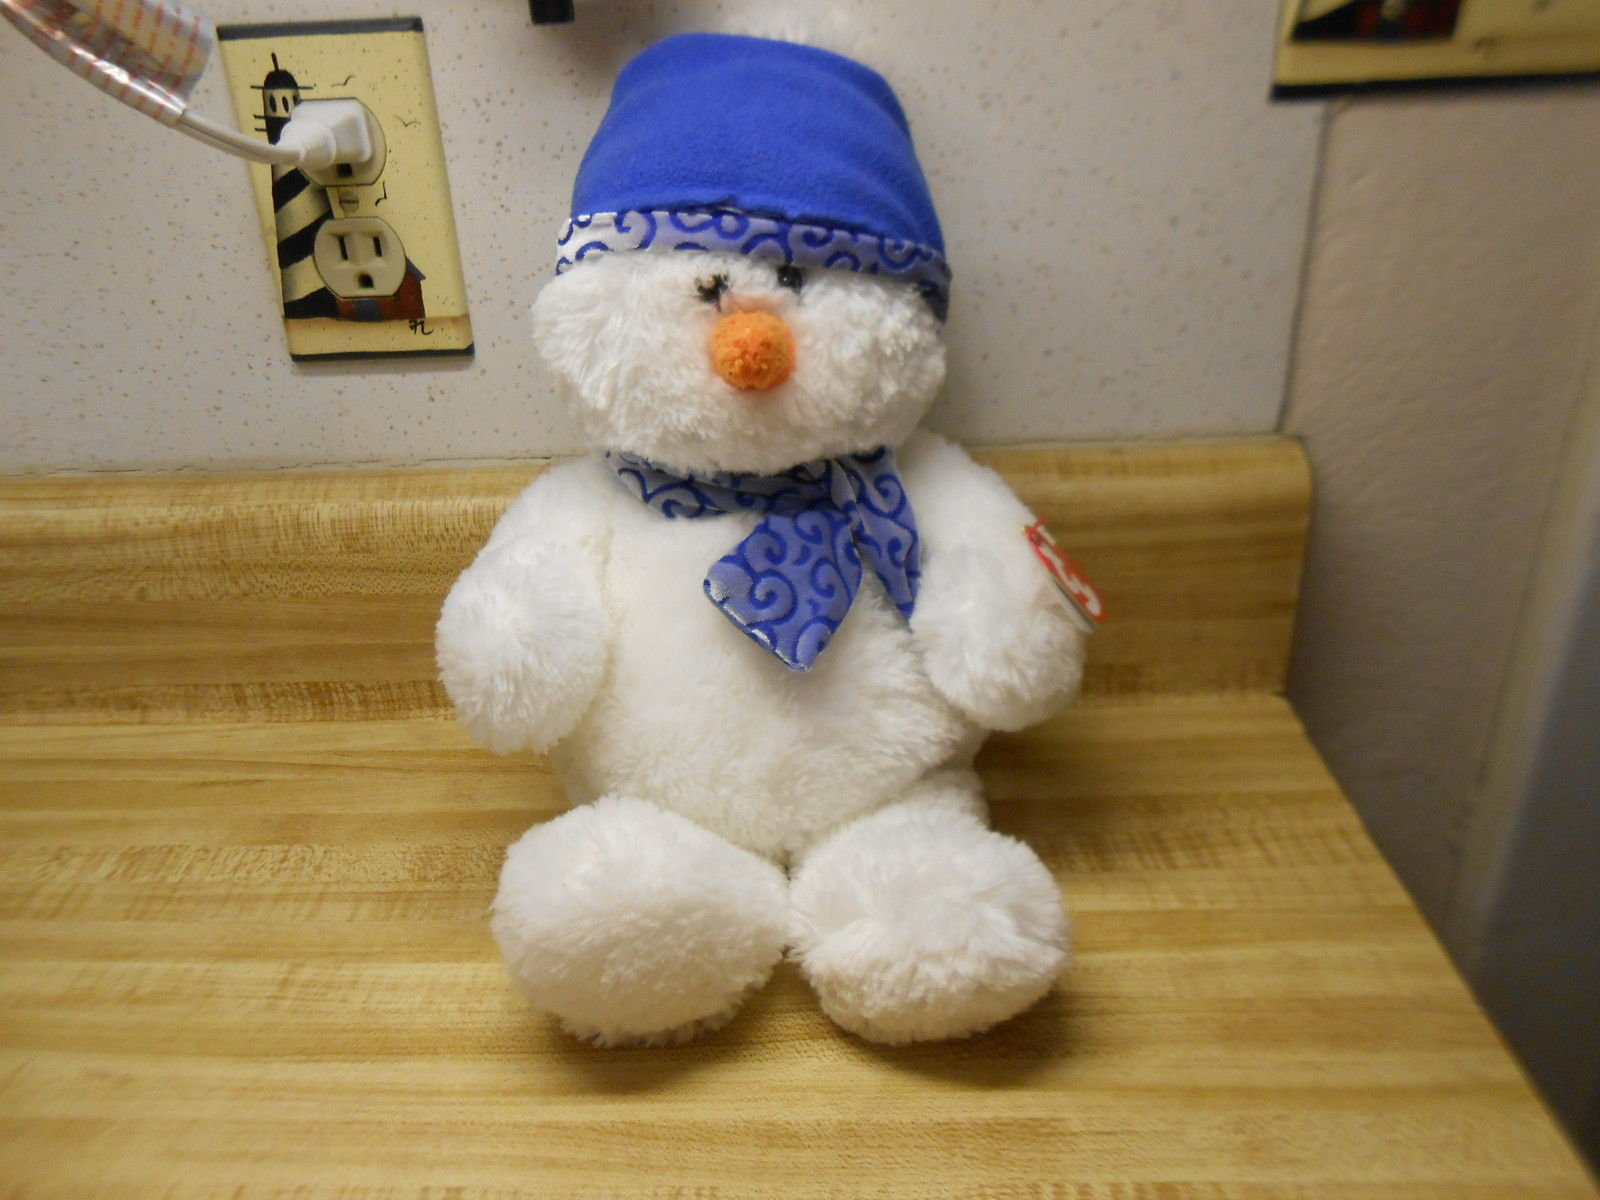 Primary image for ty beanie babies snowman with bean bag bottom from 2007 ty Igloo snowman